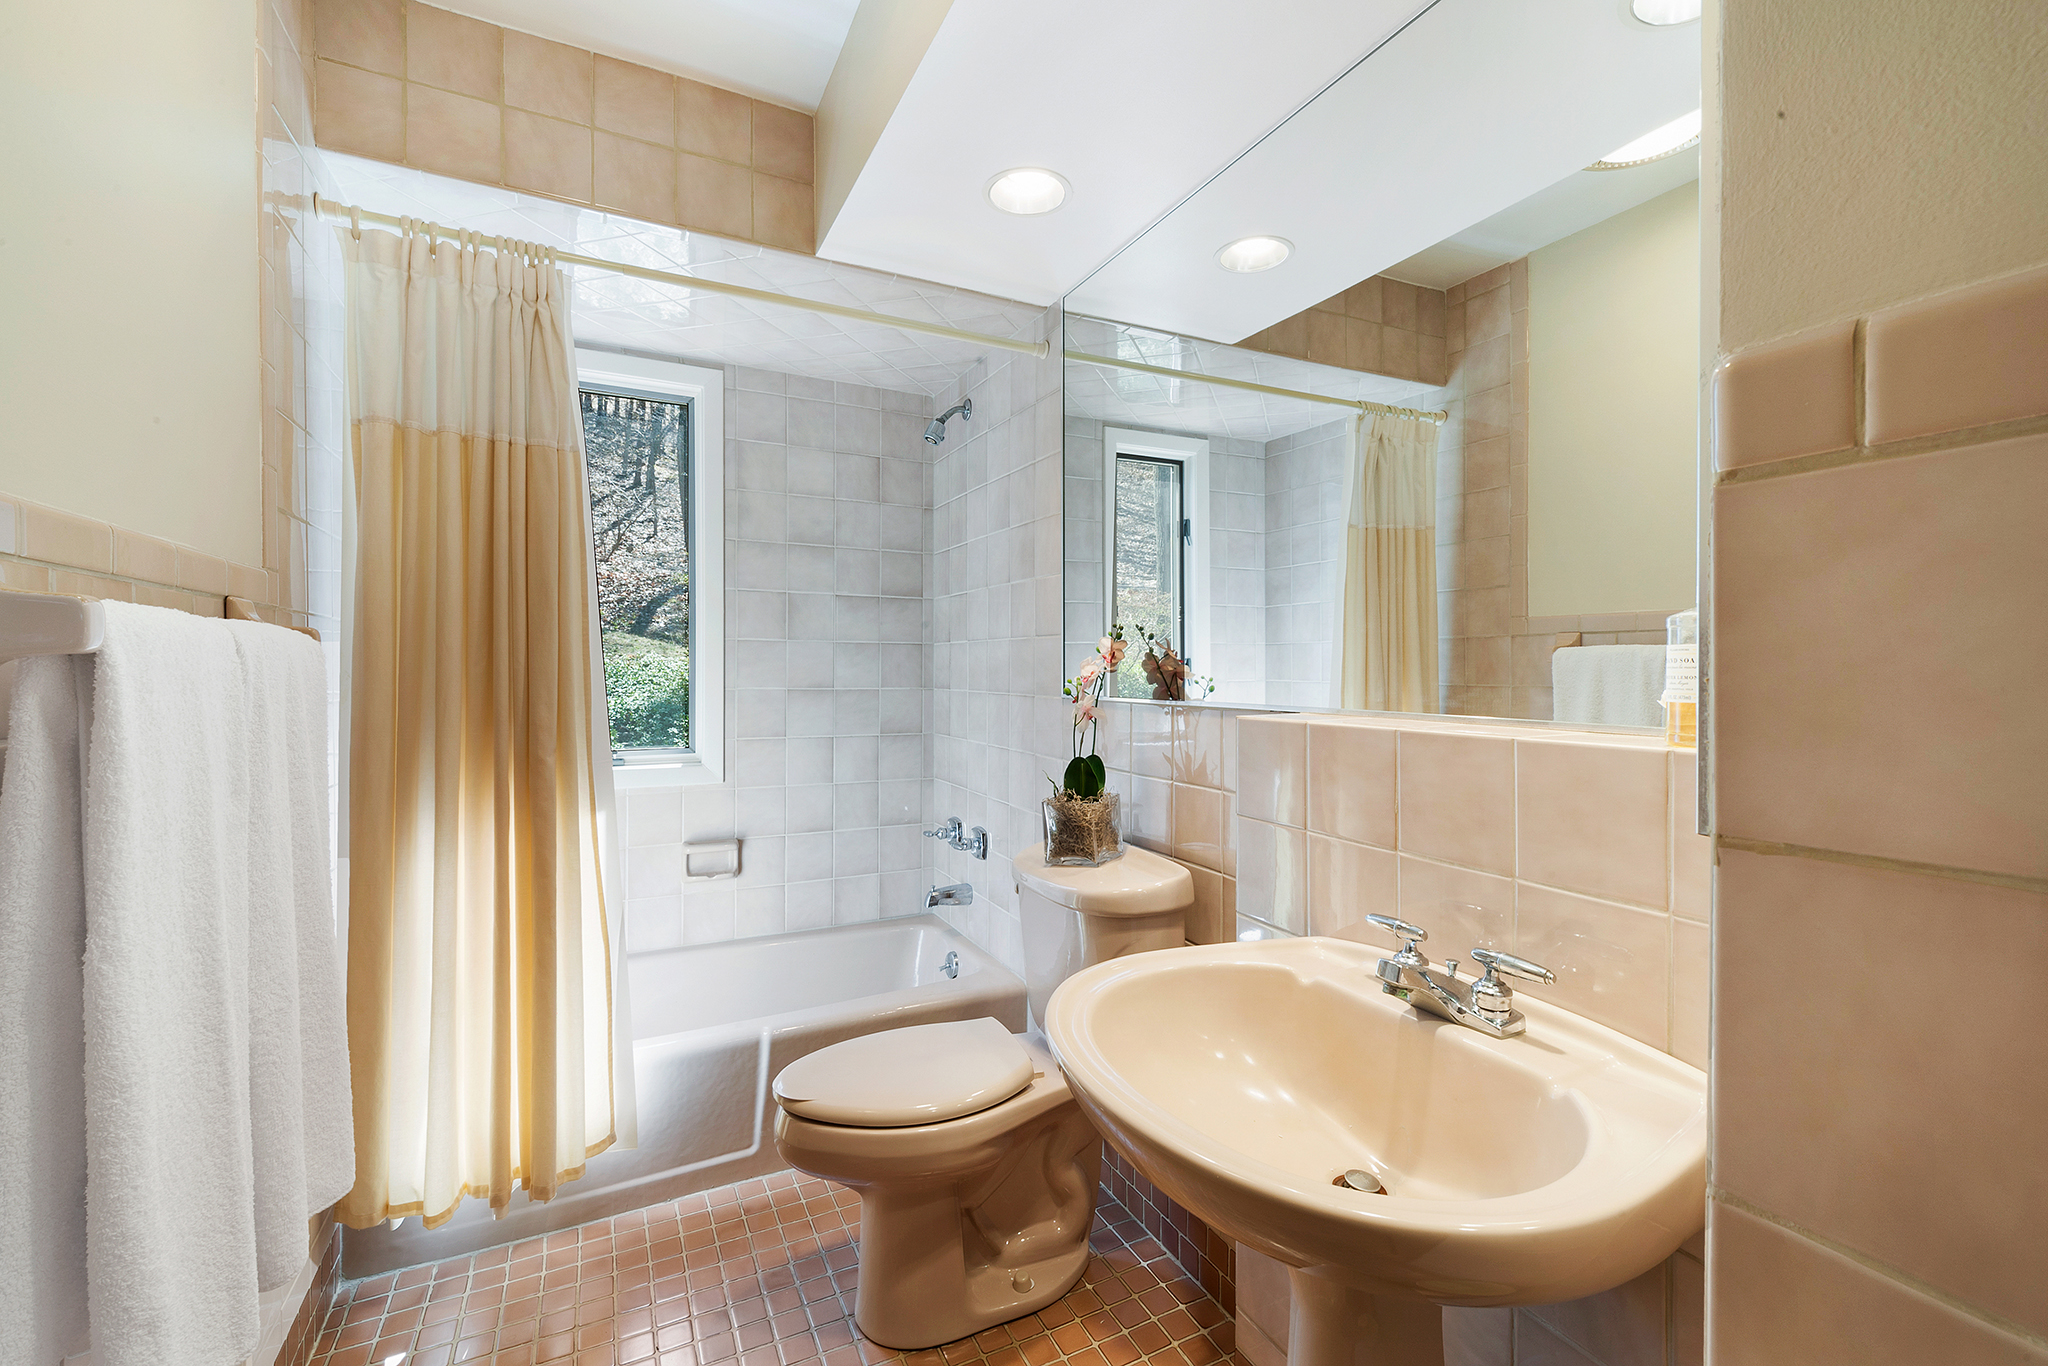 11 1 Dinner Pot Road, Tewksbury — Hall Bathroom (deleted cfacd329085143474e9d62feb71cd565)